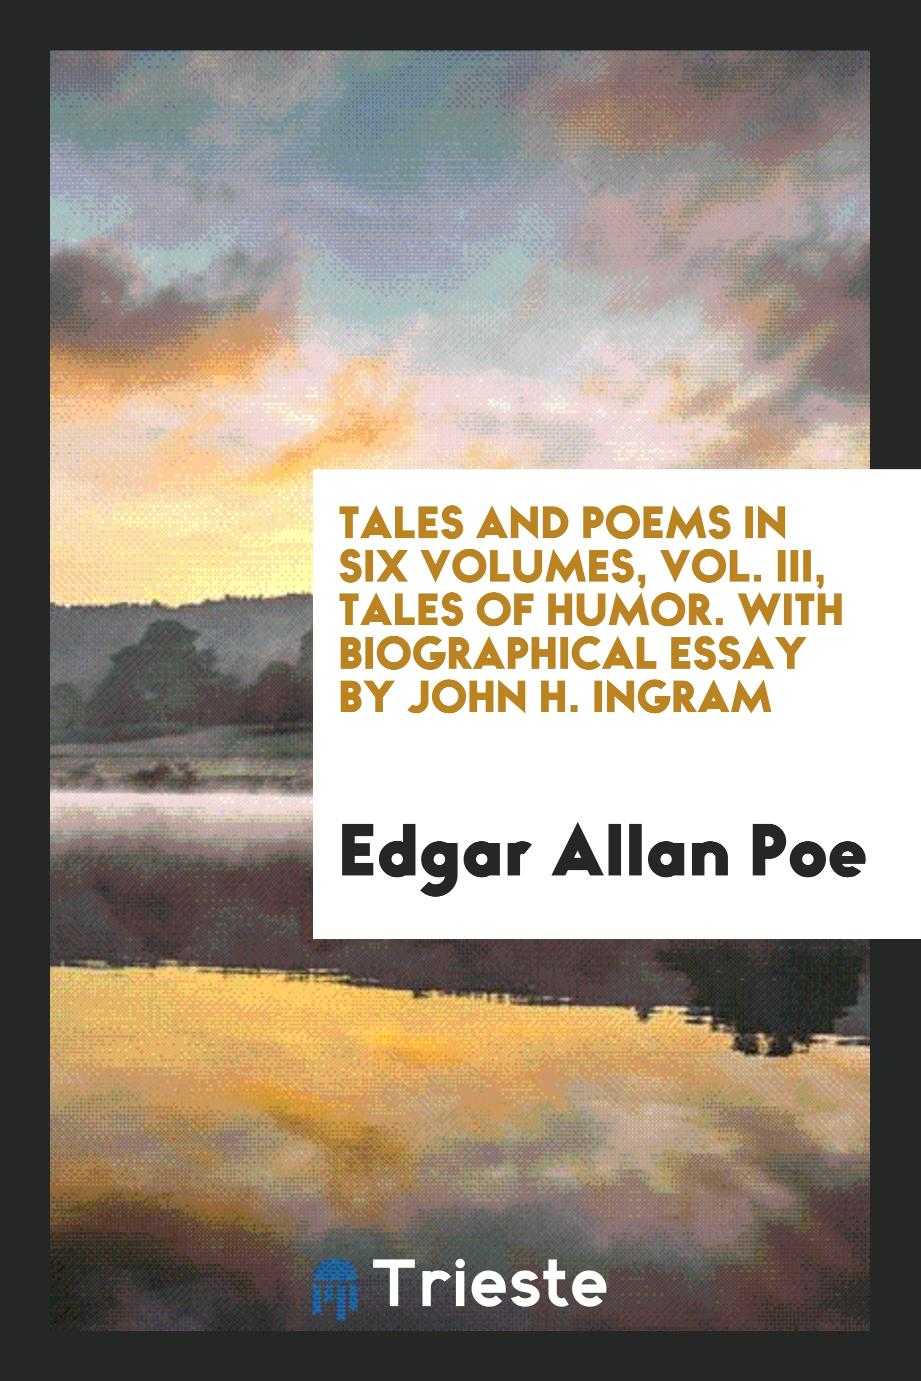 Tales and poems in six volumes, Vol. III, Tales of humor. With biographical essay by John H. Ingram